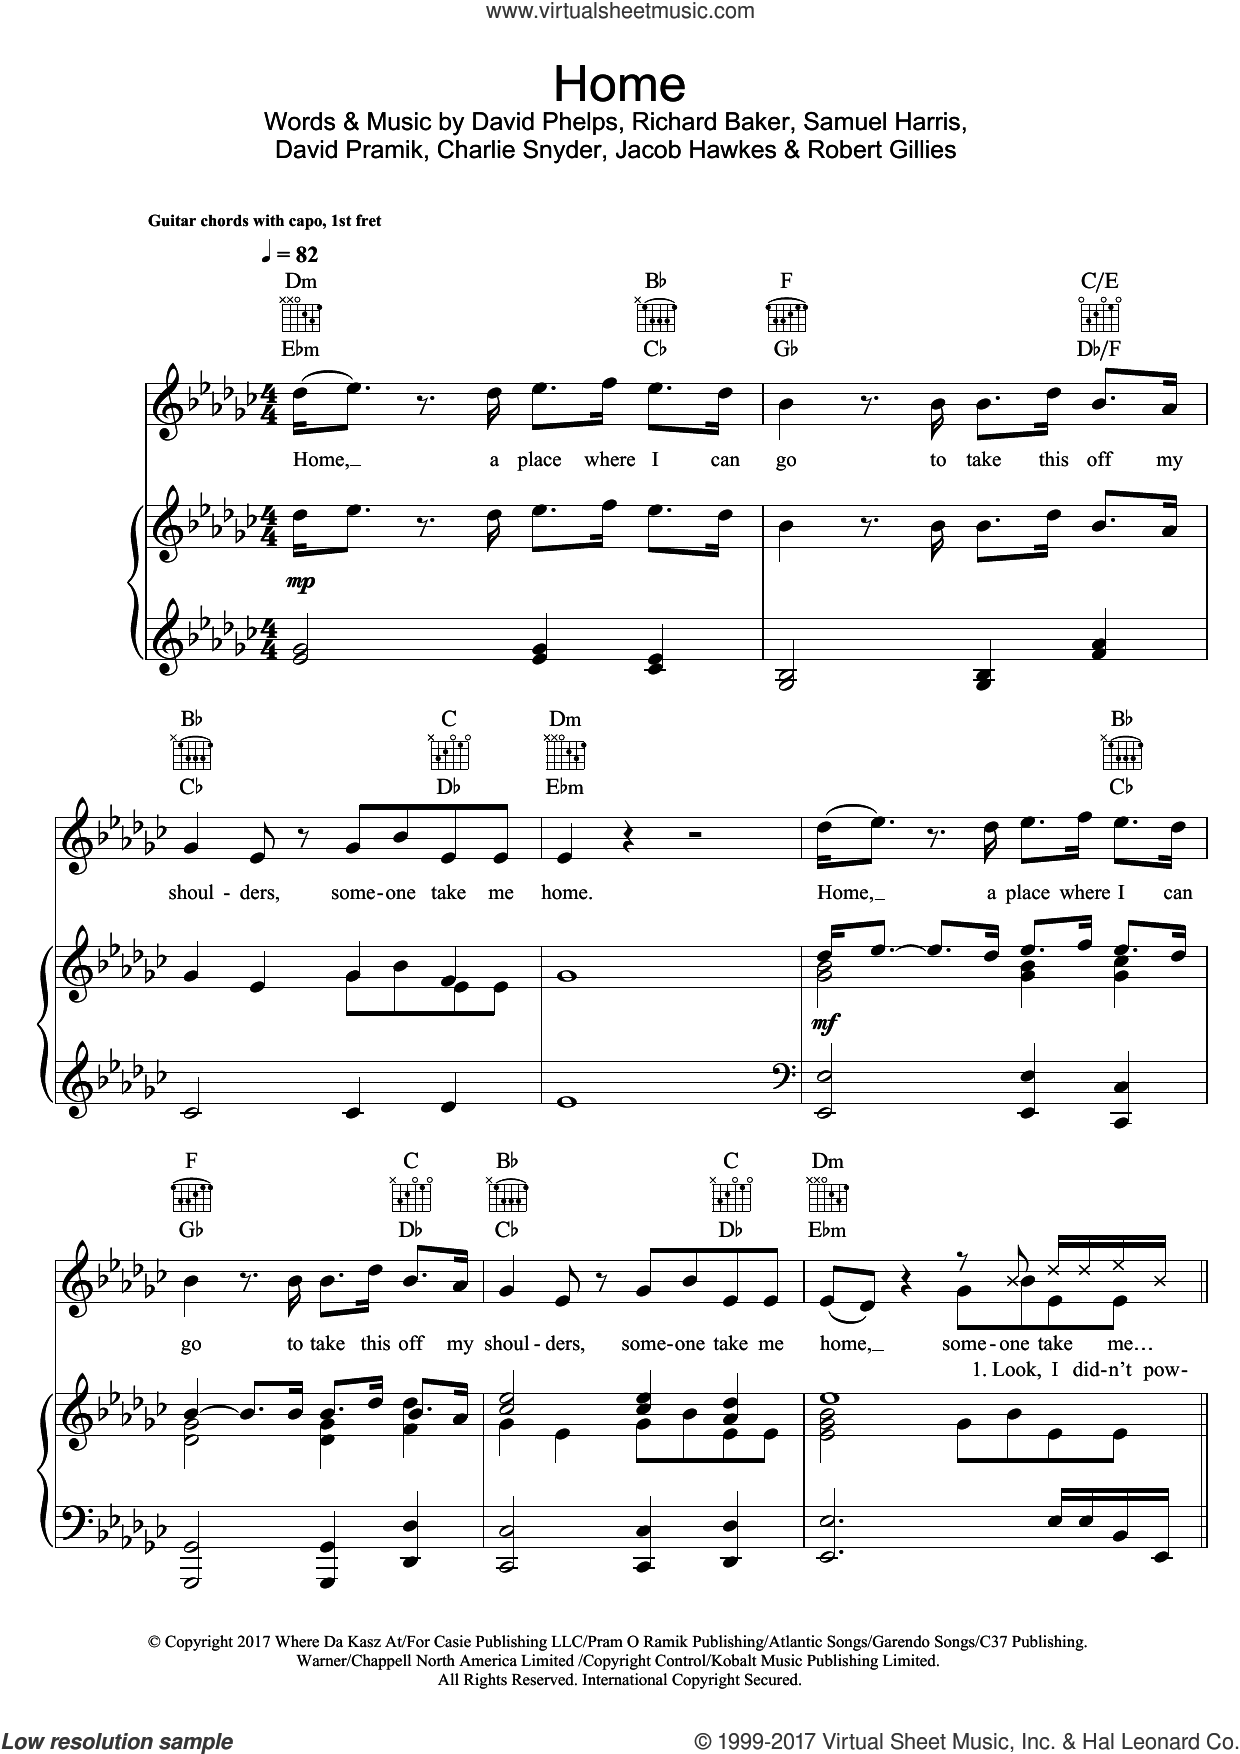 Home (featuring X Ambassadors and Bebe Rexha) sheet music for voice, piano or guitar by Machine Gun Kelly, Bebe Rexha, X Ambassadors, Charlie Snyder, David Phelps, David Pramik, Jacob Hawkes, Richard Baker, Robert Gillies and Samuel Harris, intermediate